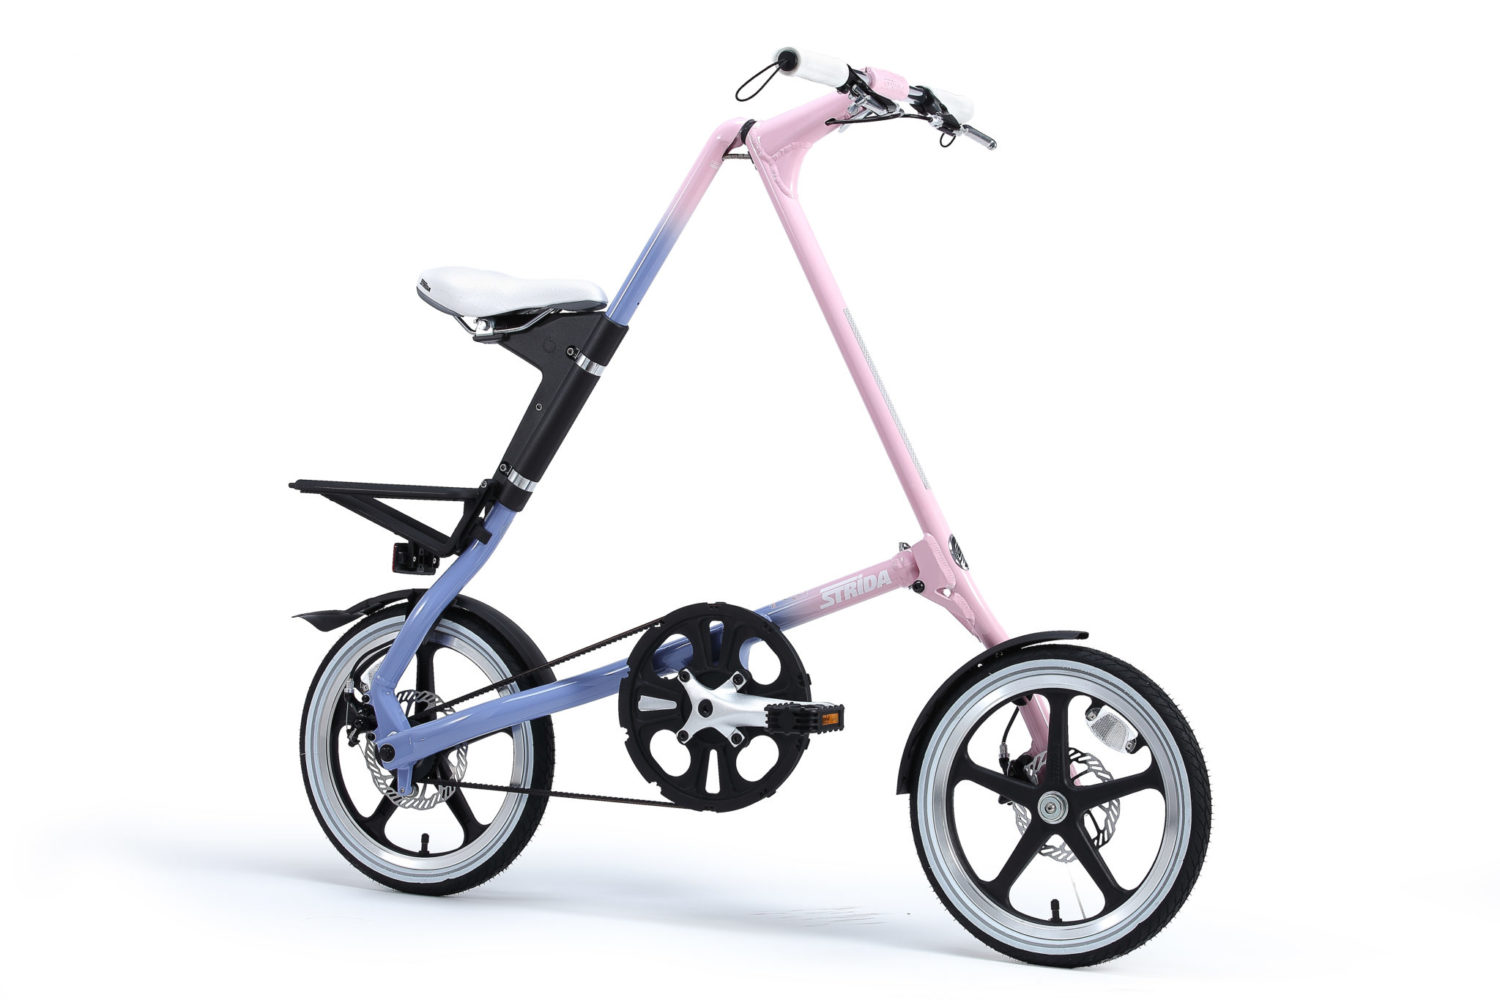 STRIDA LT Smooth Pastel - 18 inch - bike - Buy foldable bikes - Buy folding bicycle - Buy folding bike - Buy folding bikes - buying - collapsible bike - Design bike - Design folding bike - foldable bike - Folding bicycle - Folding bike - Folding bike shop - Folding bikes - for sale - Lightweight - lt - new - shop - Single speed - strida - Strida design folding bike - Triangular - Triangular folding bike - Triangular shaped - unique folding bike